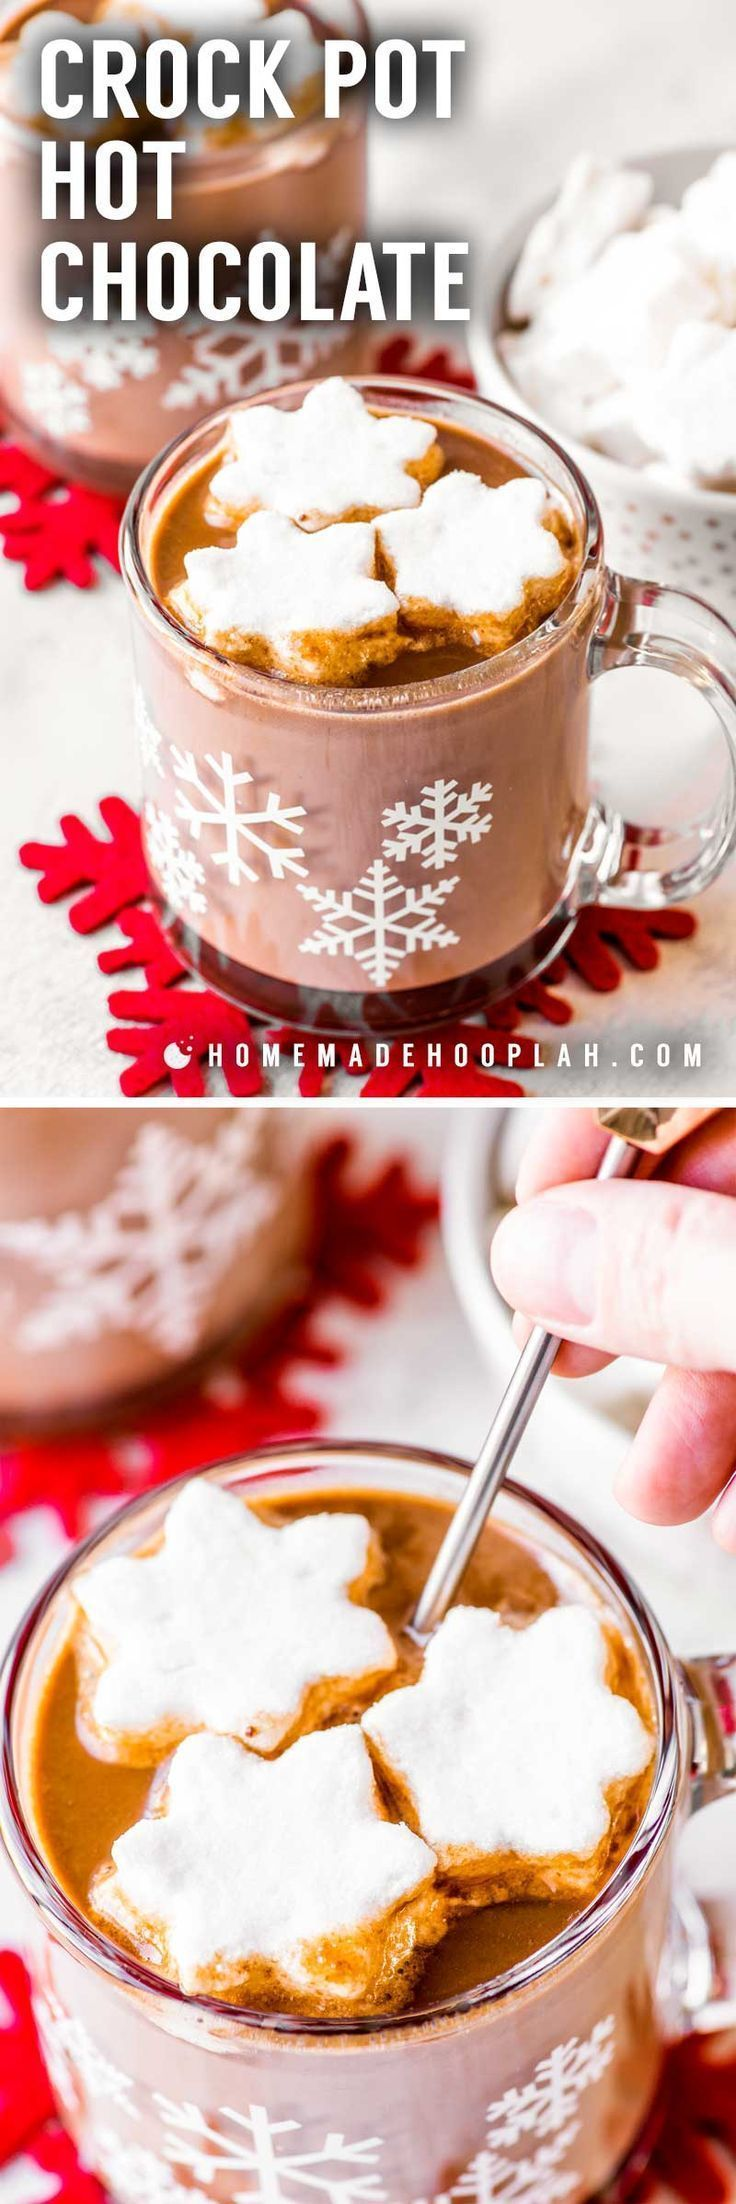 Crock Pot Hot Chocolate! Warm up this winter season with a creamy hot cup of chocolate made in a crock pot. This easy recipe is completely hands-off and perfect for limiting your time off the couch or out of bed. Garnish with mini marshmallows for the best sugar therapy! | HomemadeHooplah.com #healthymarshmallows